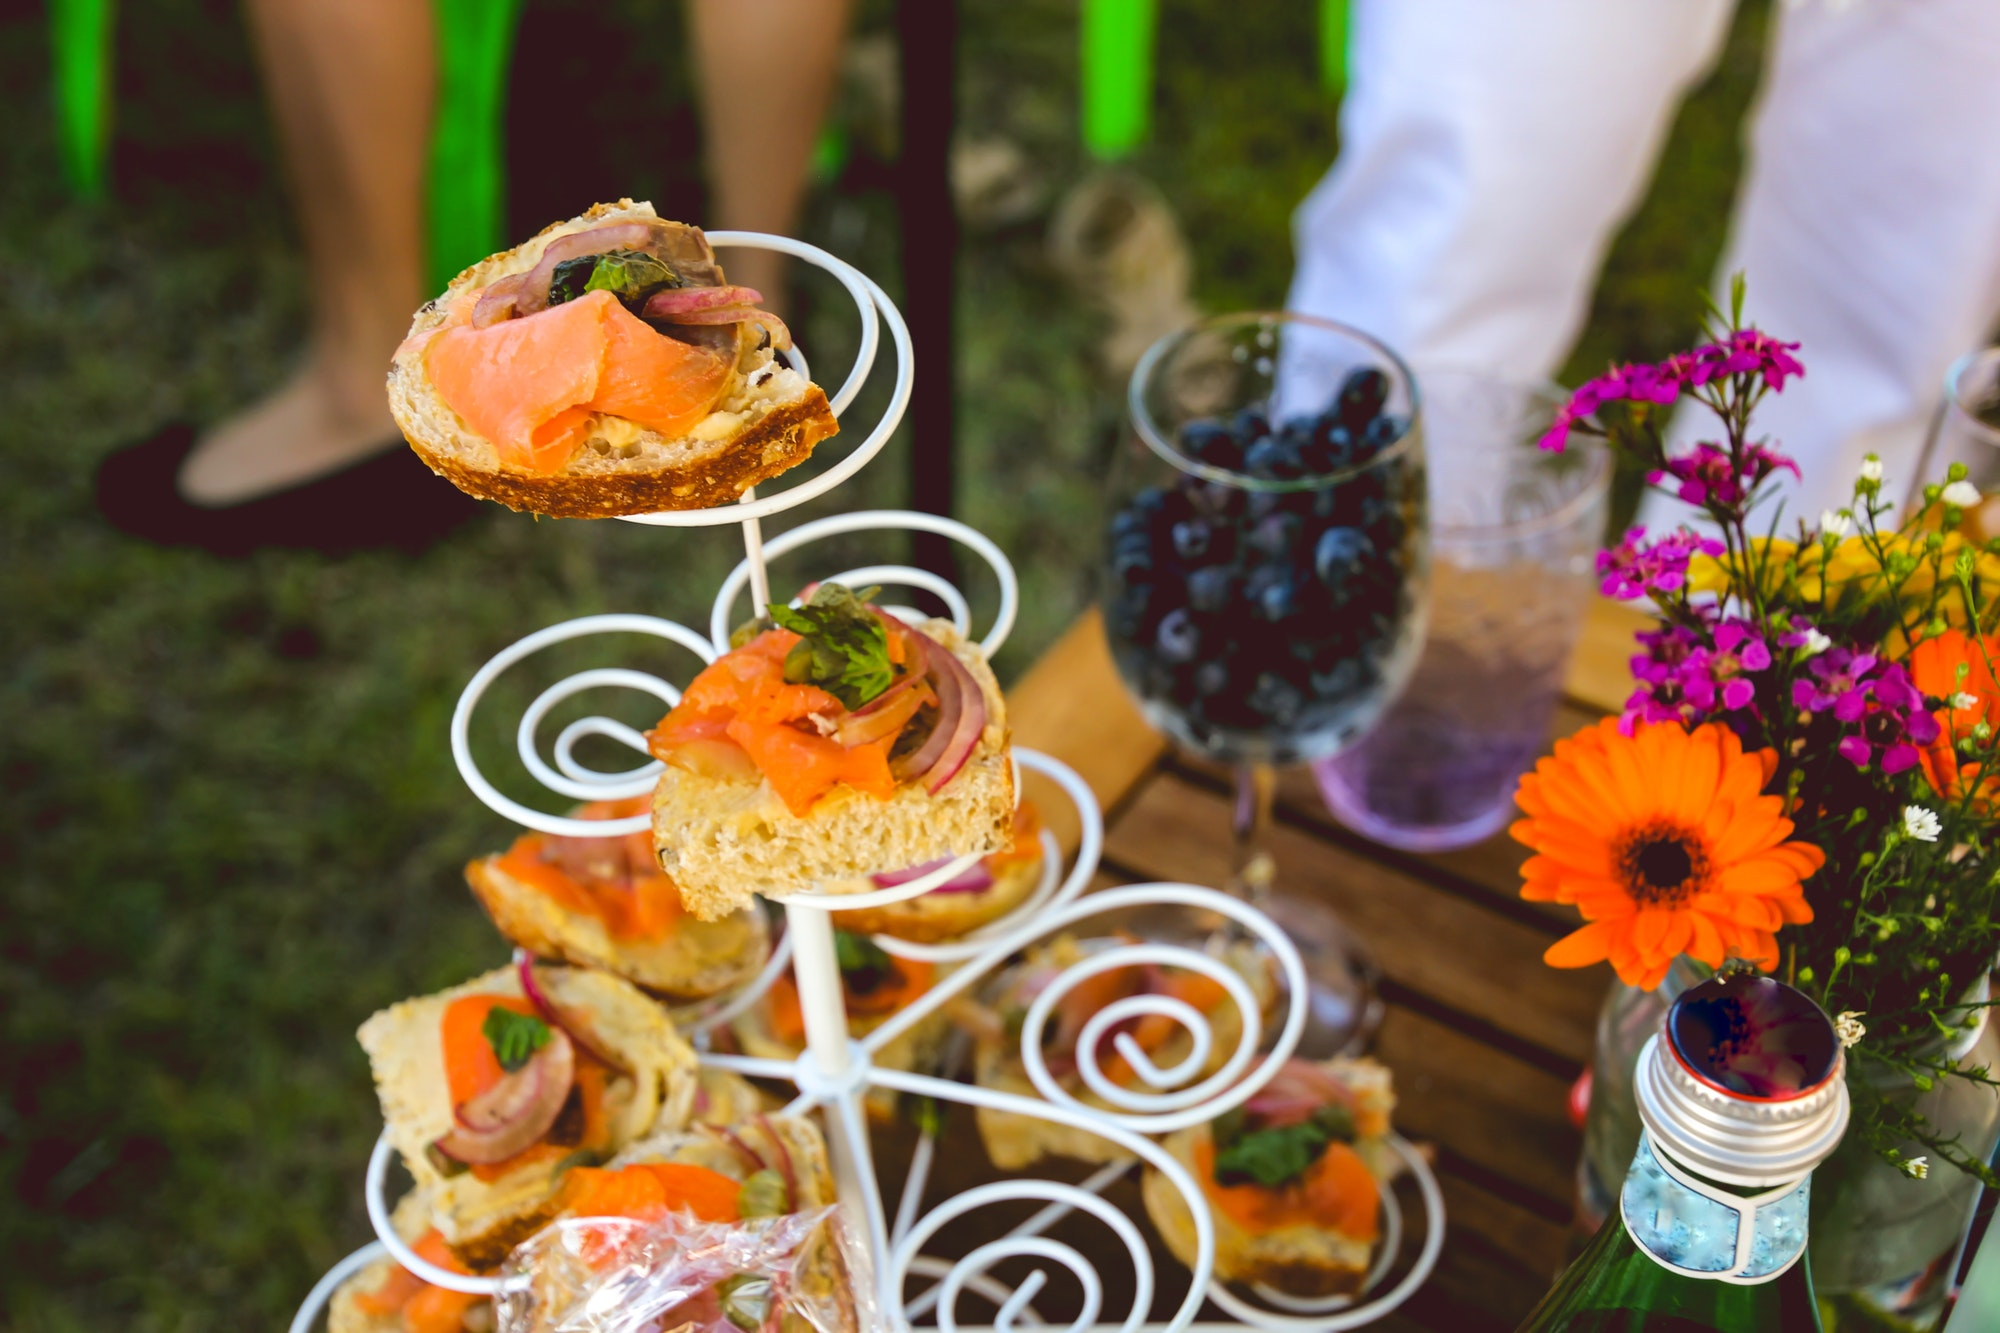 food on the table at a summer garden party